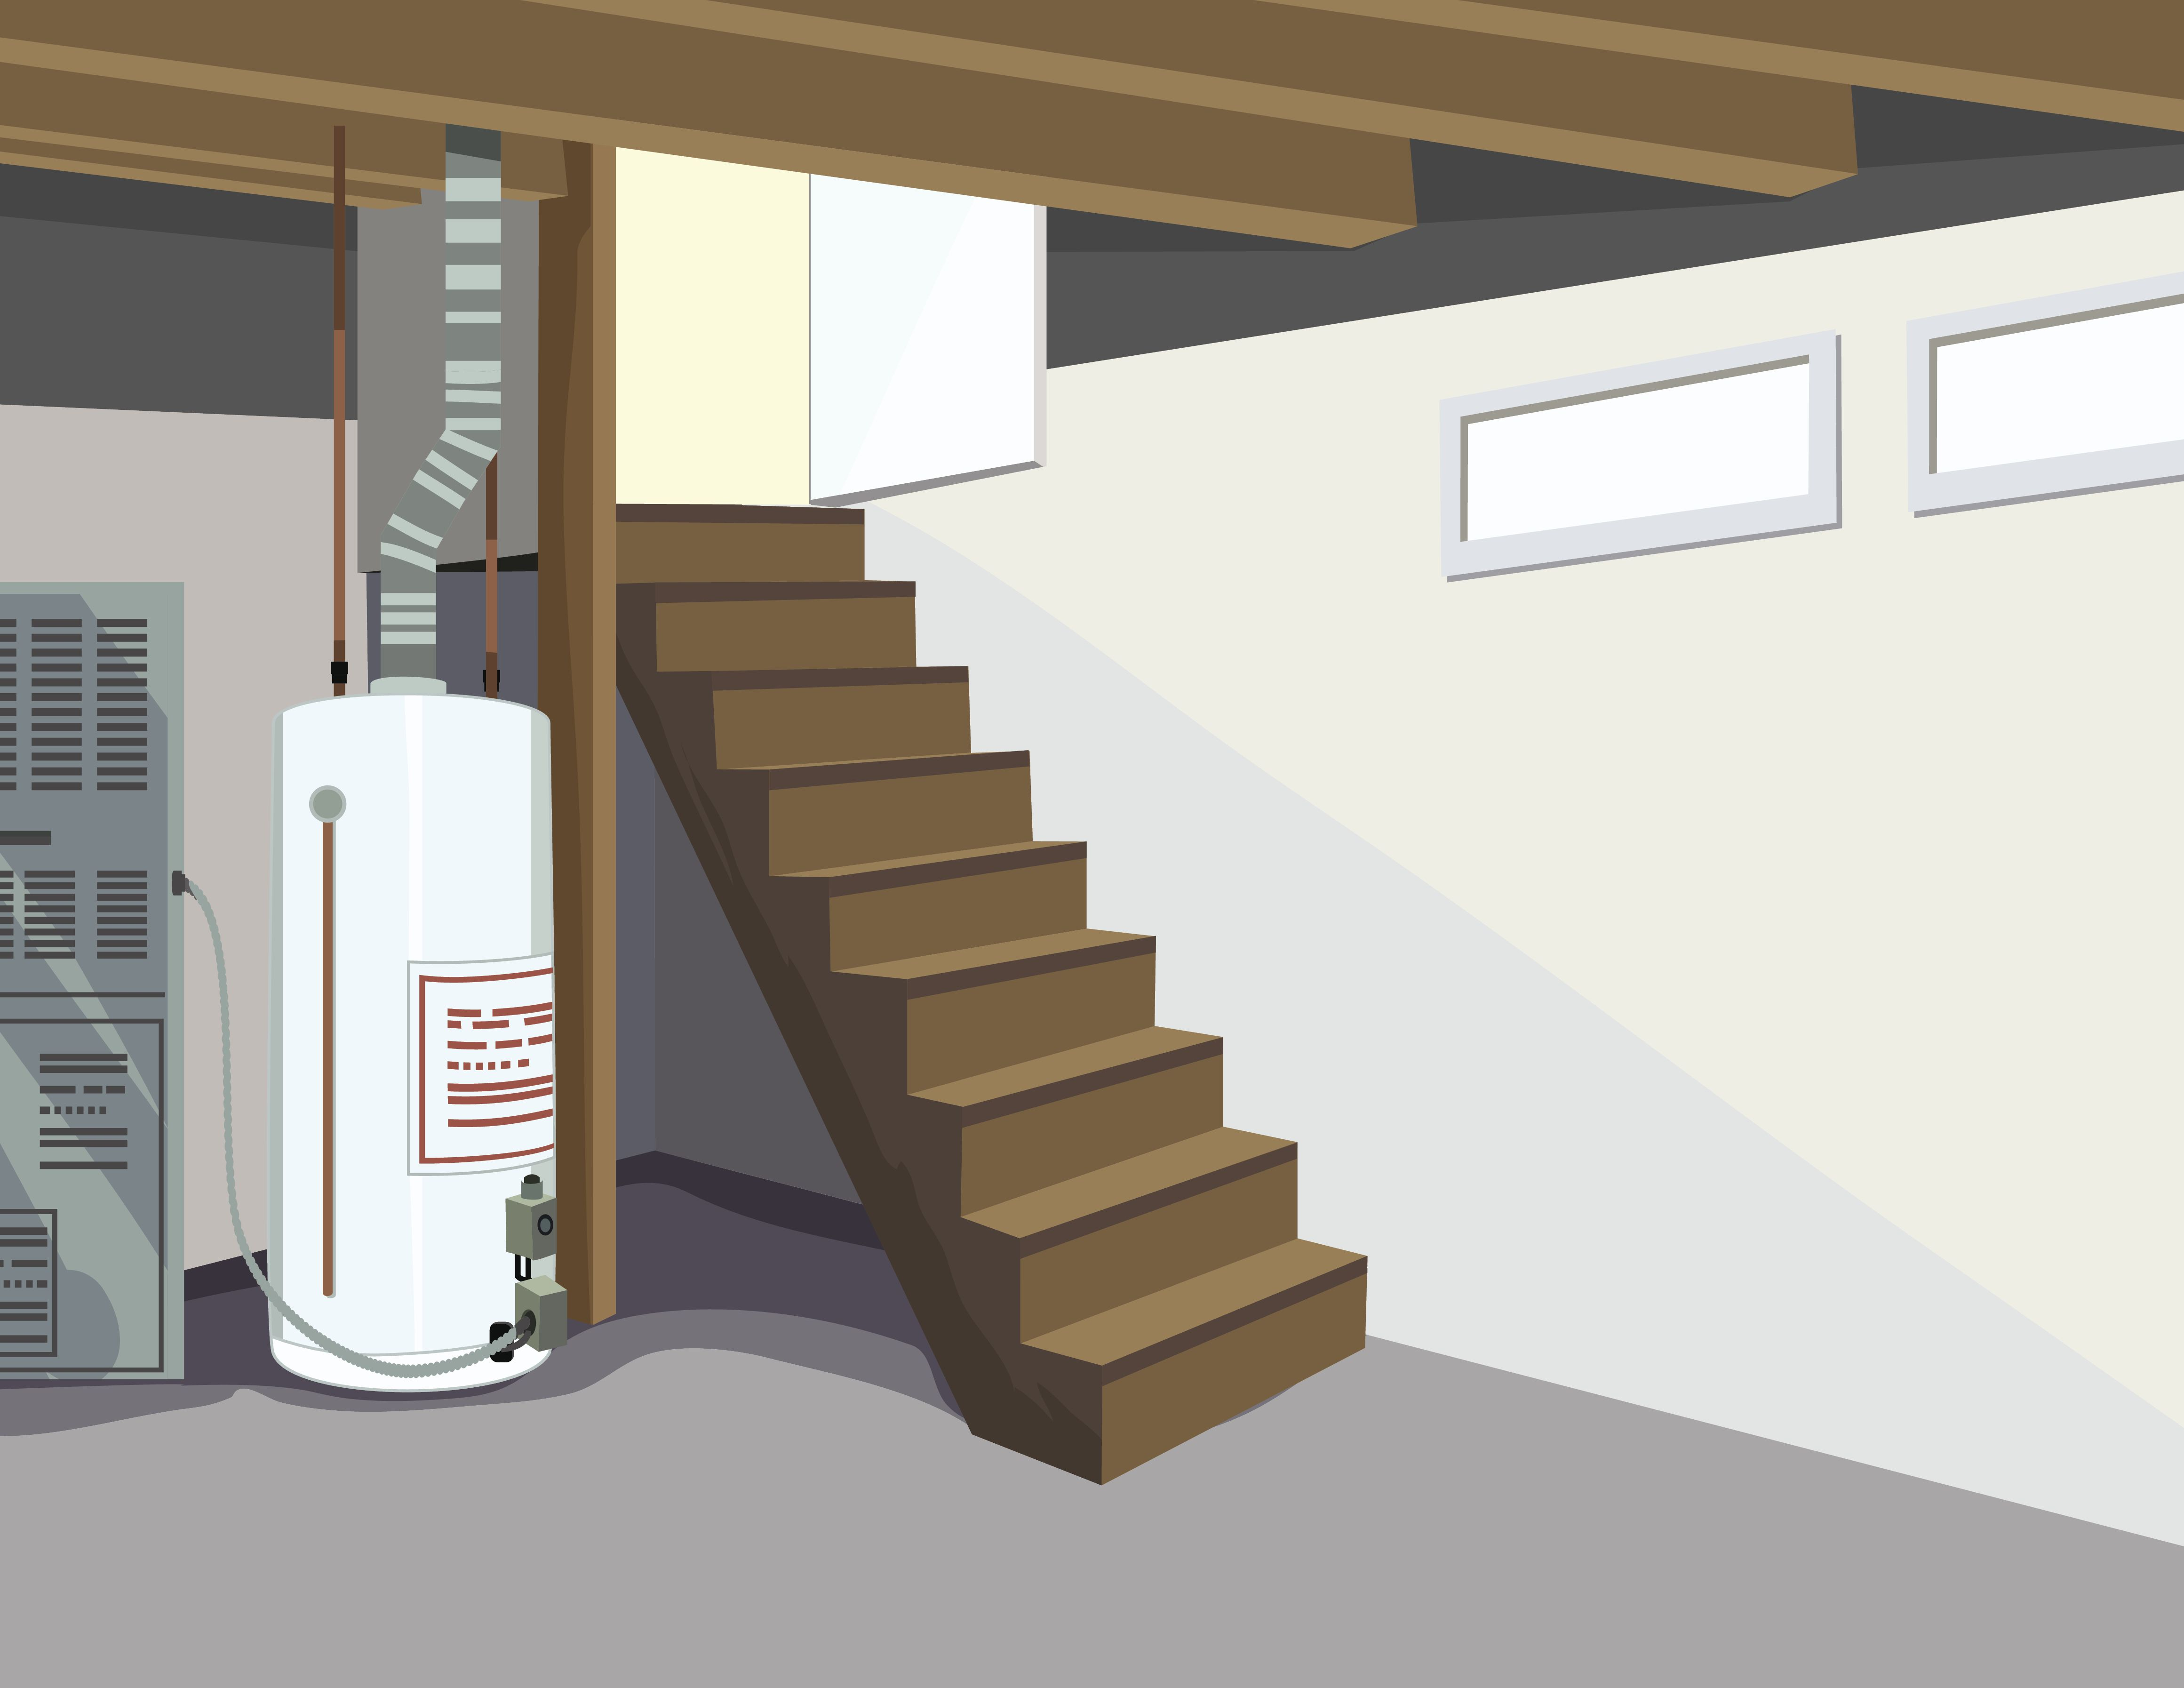 Types Of Home Heating Systems Electrical Wiring Basement Canada